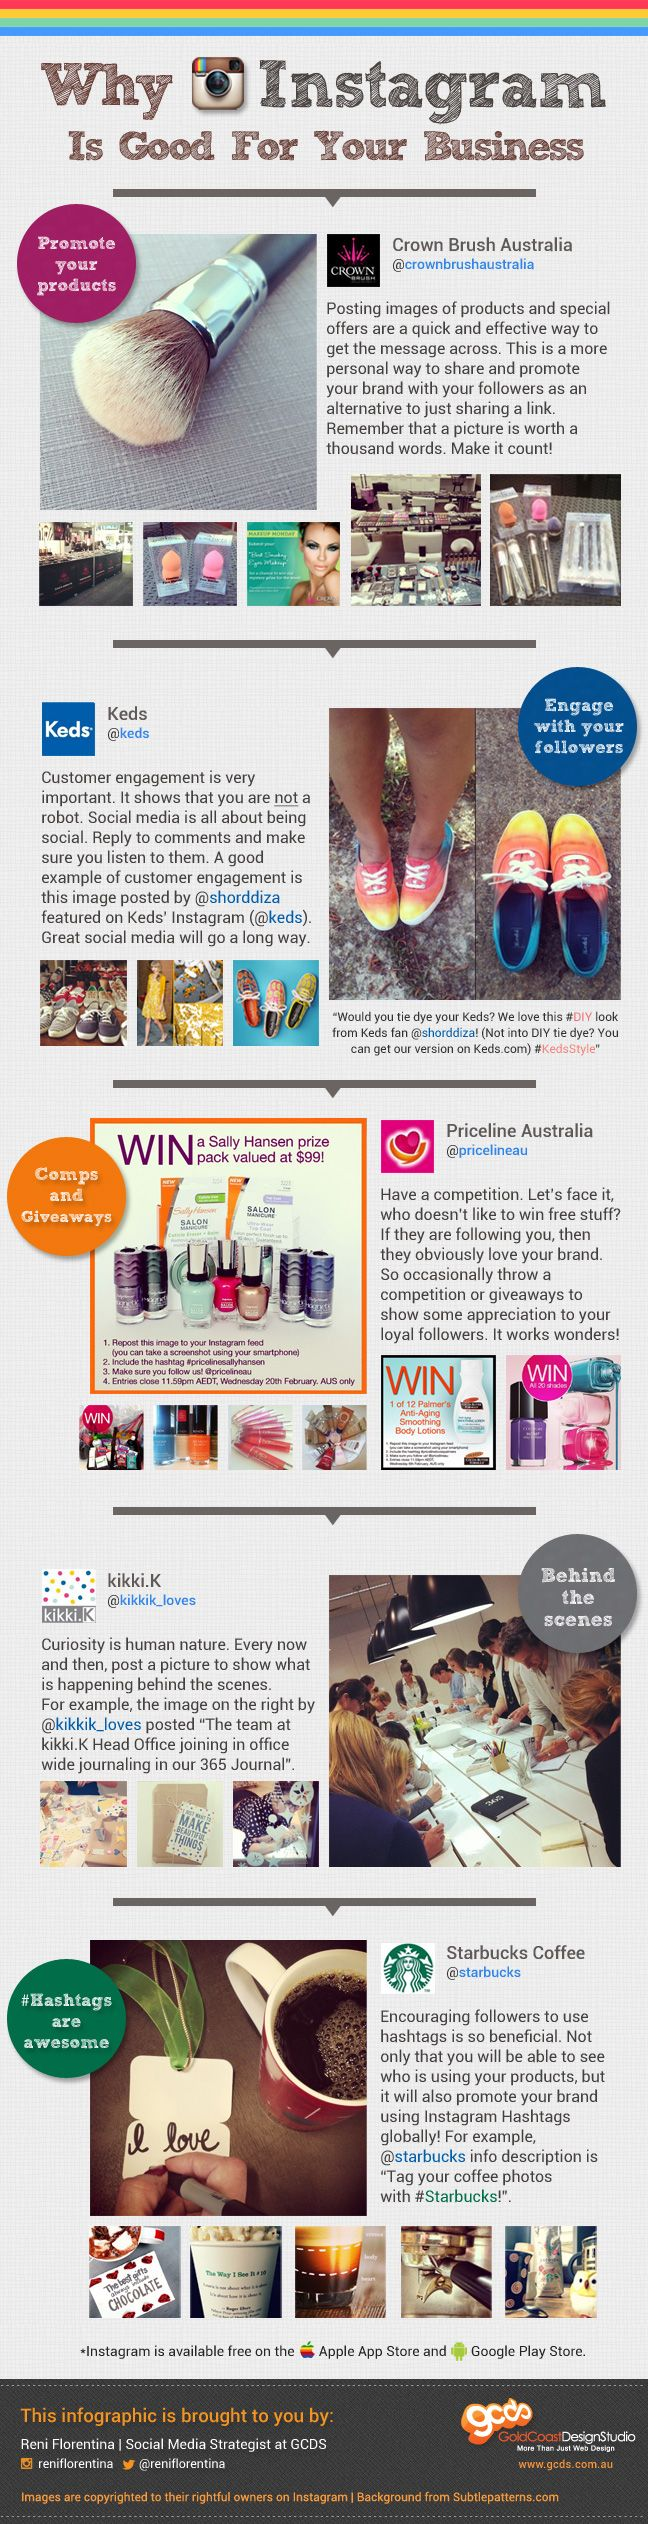 How Businesses Can Use #Instagram [#INFOGRAPHIC] #SocialMedia